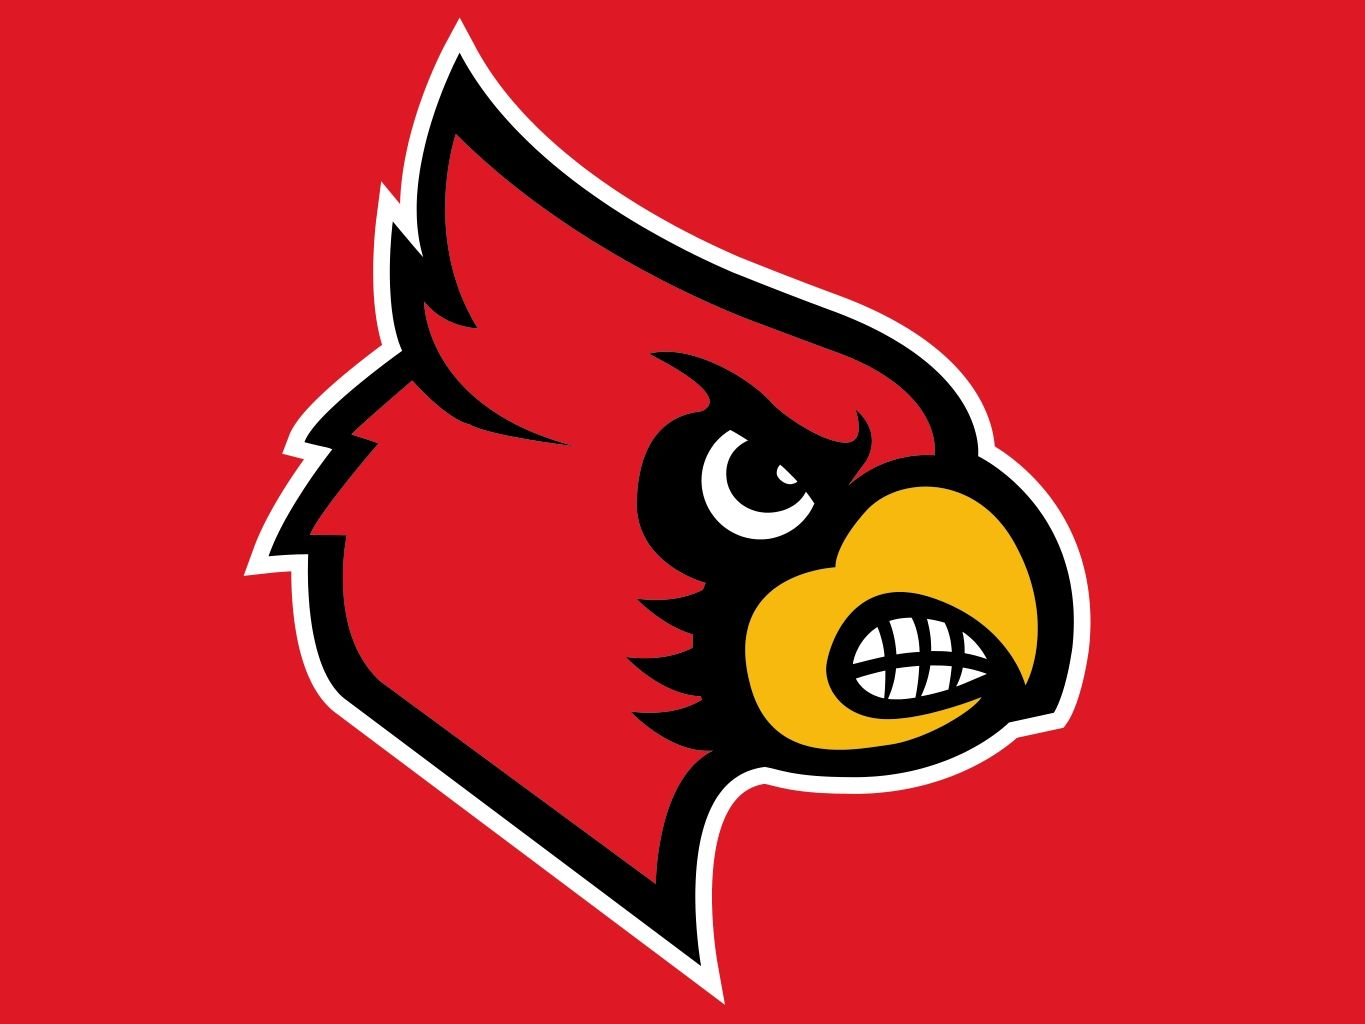 Louisville Cardinals Wallpaper for Computers 1280×720.